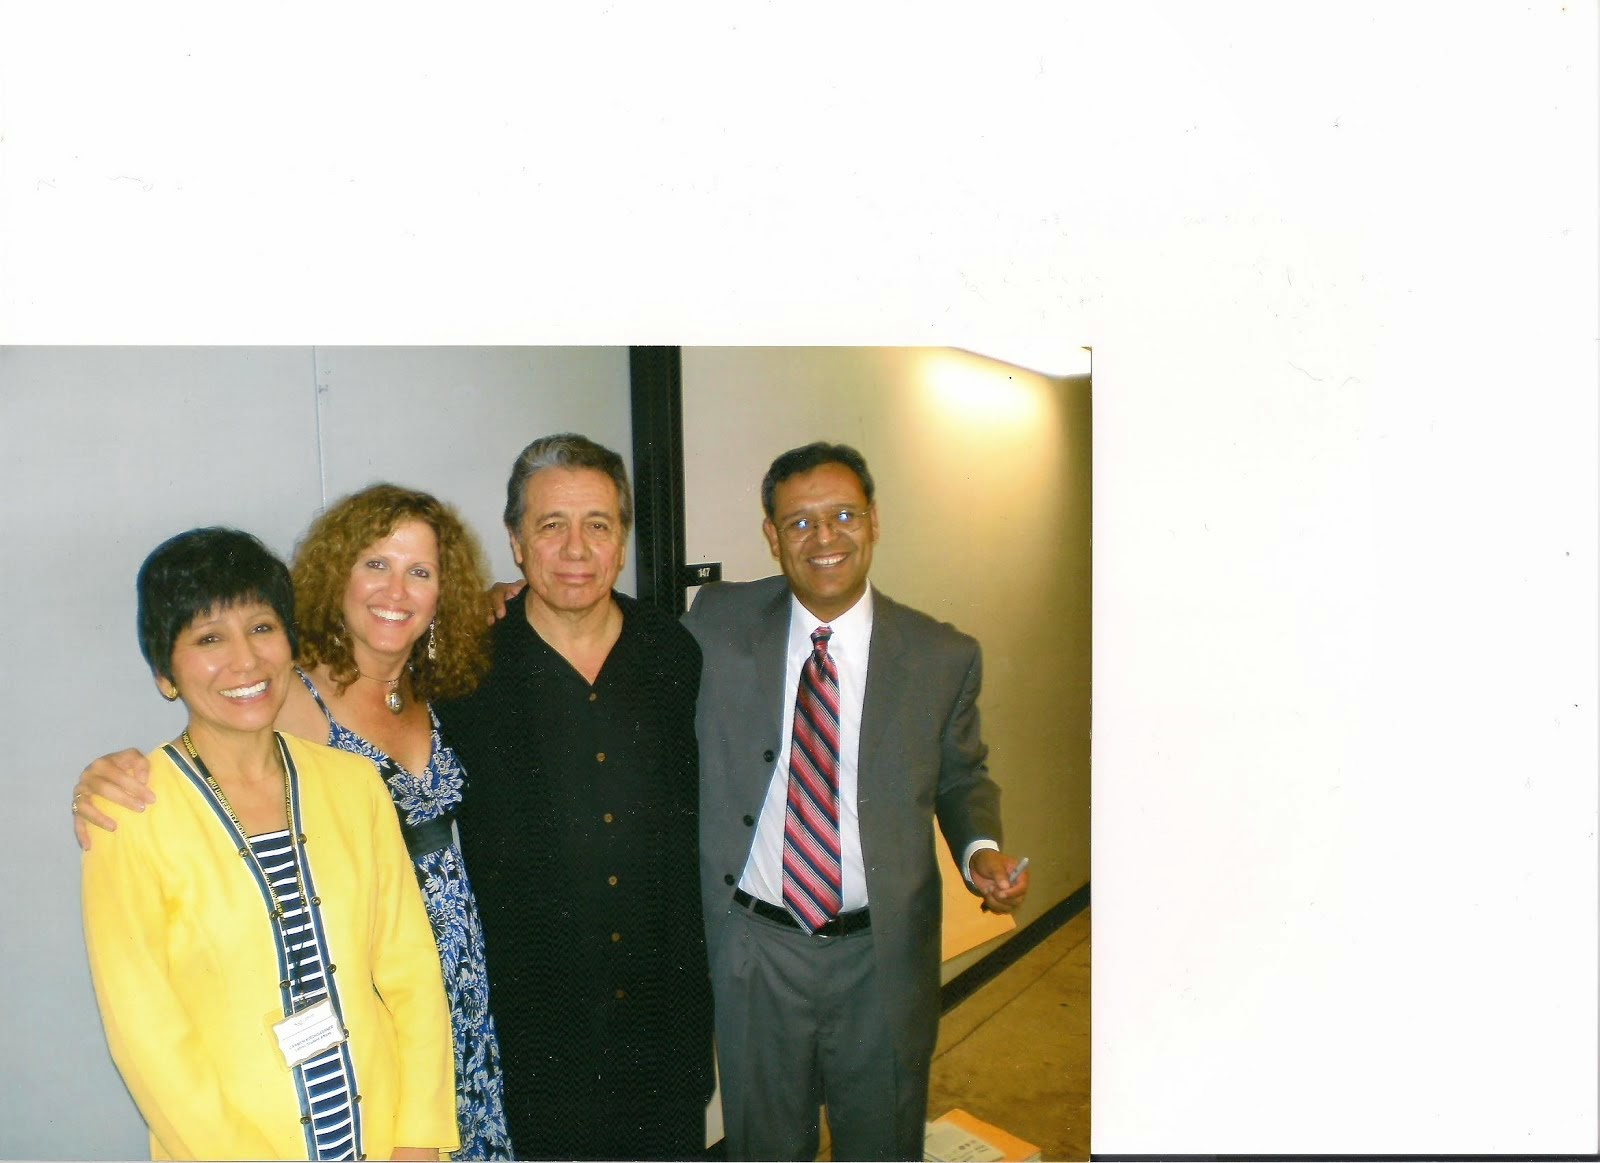 Mom (wearing yellow) and friends with Edward James Olmos